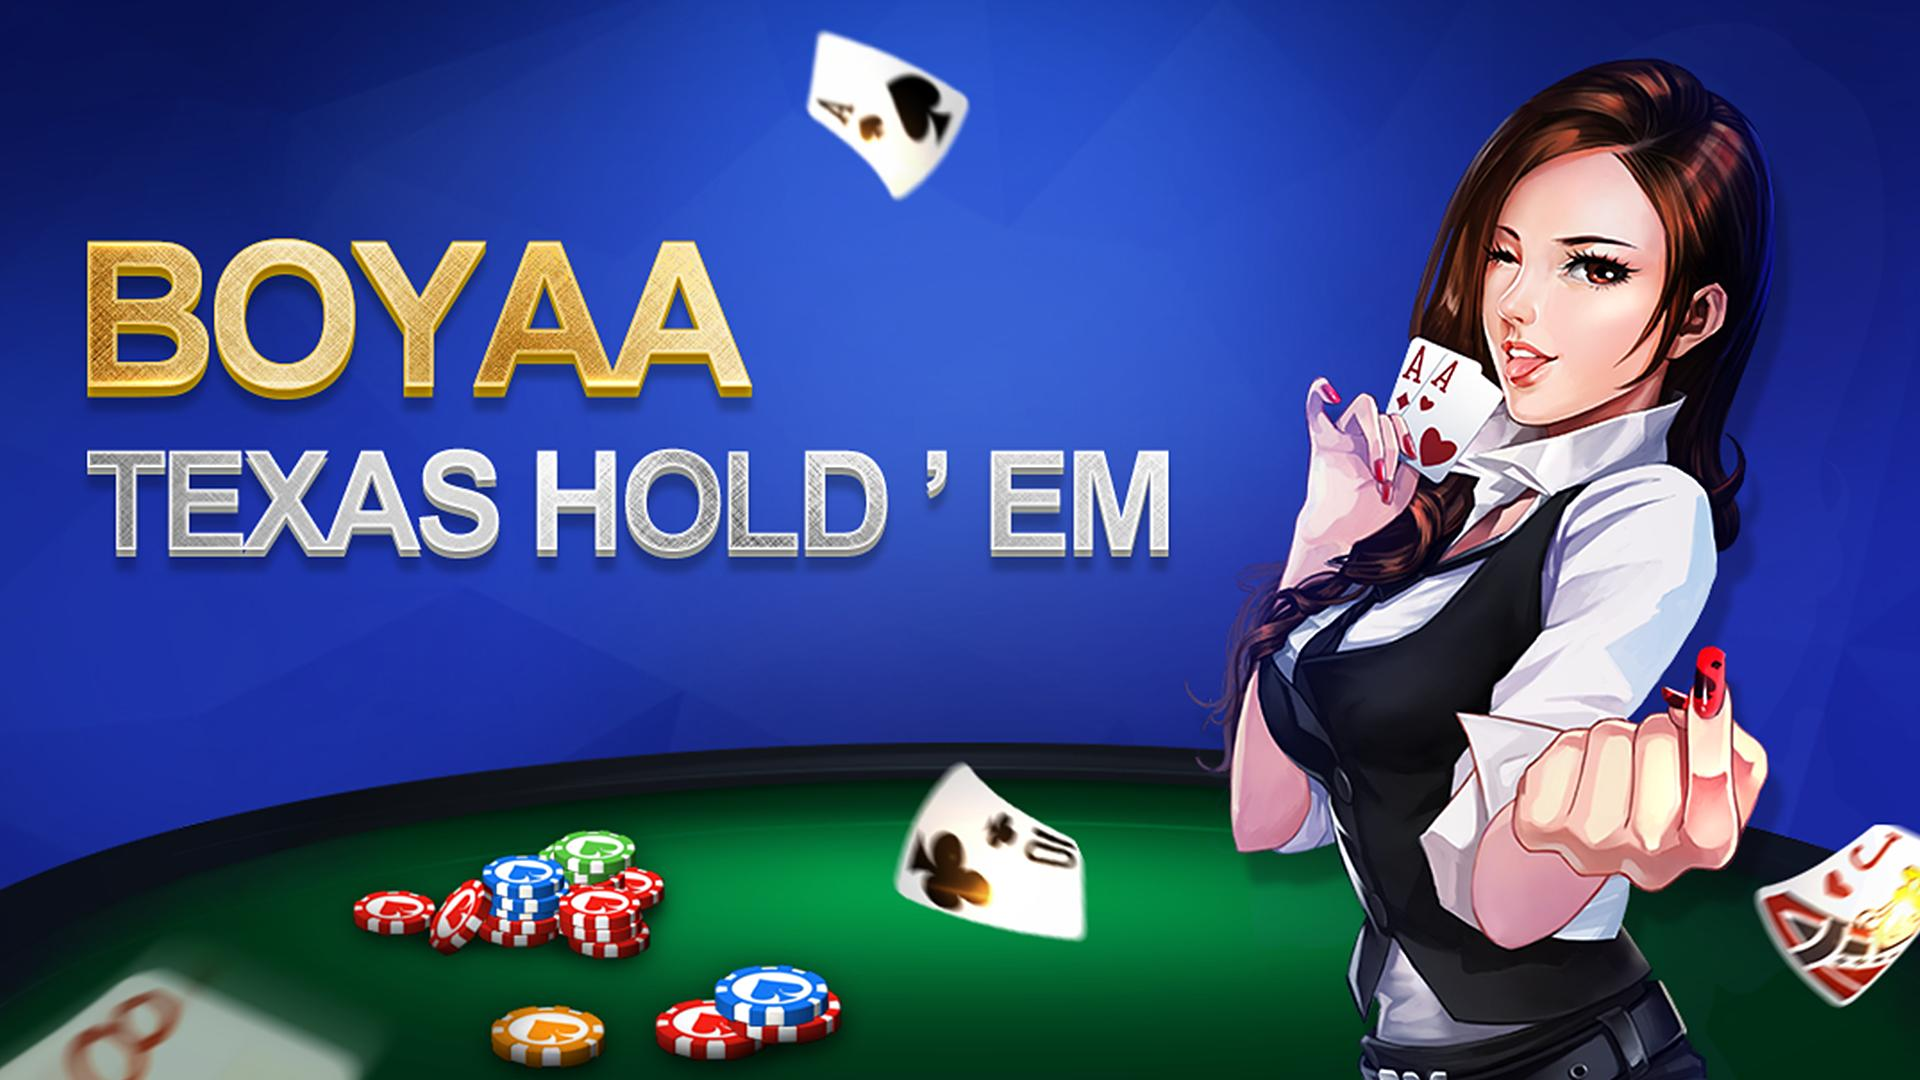 Boyaa Texas Hold Em Poker For Android Apk Download